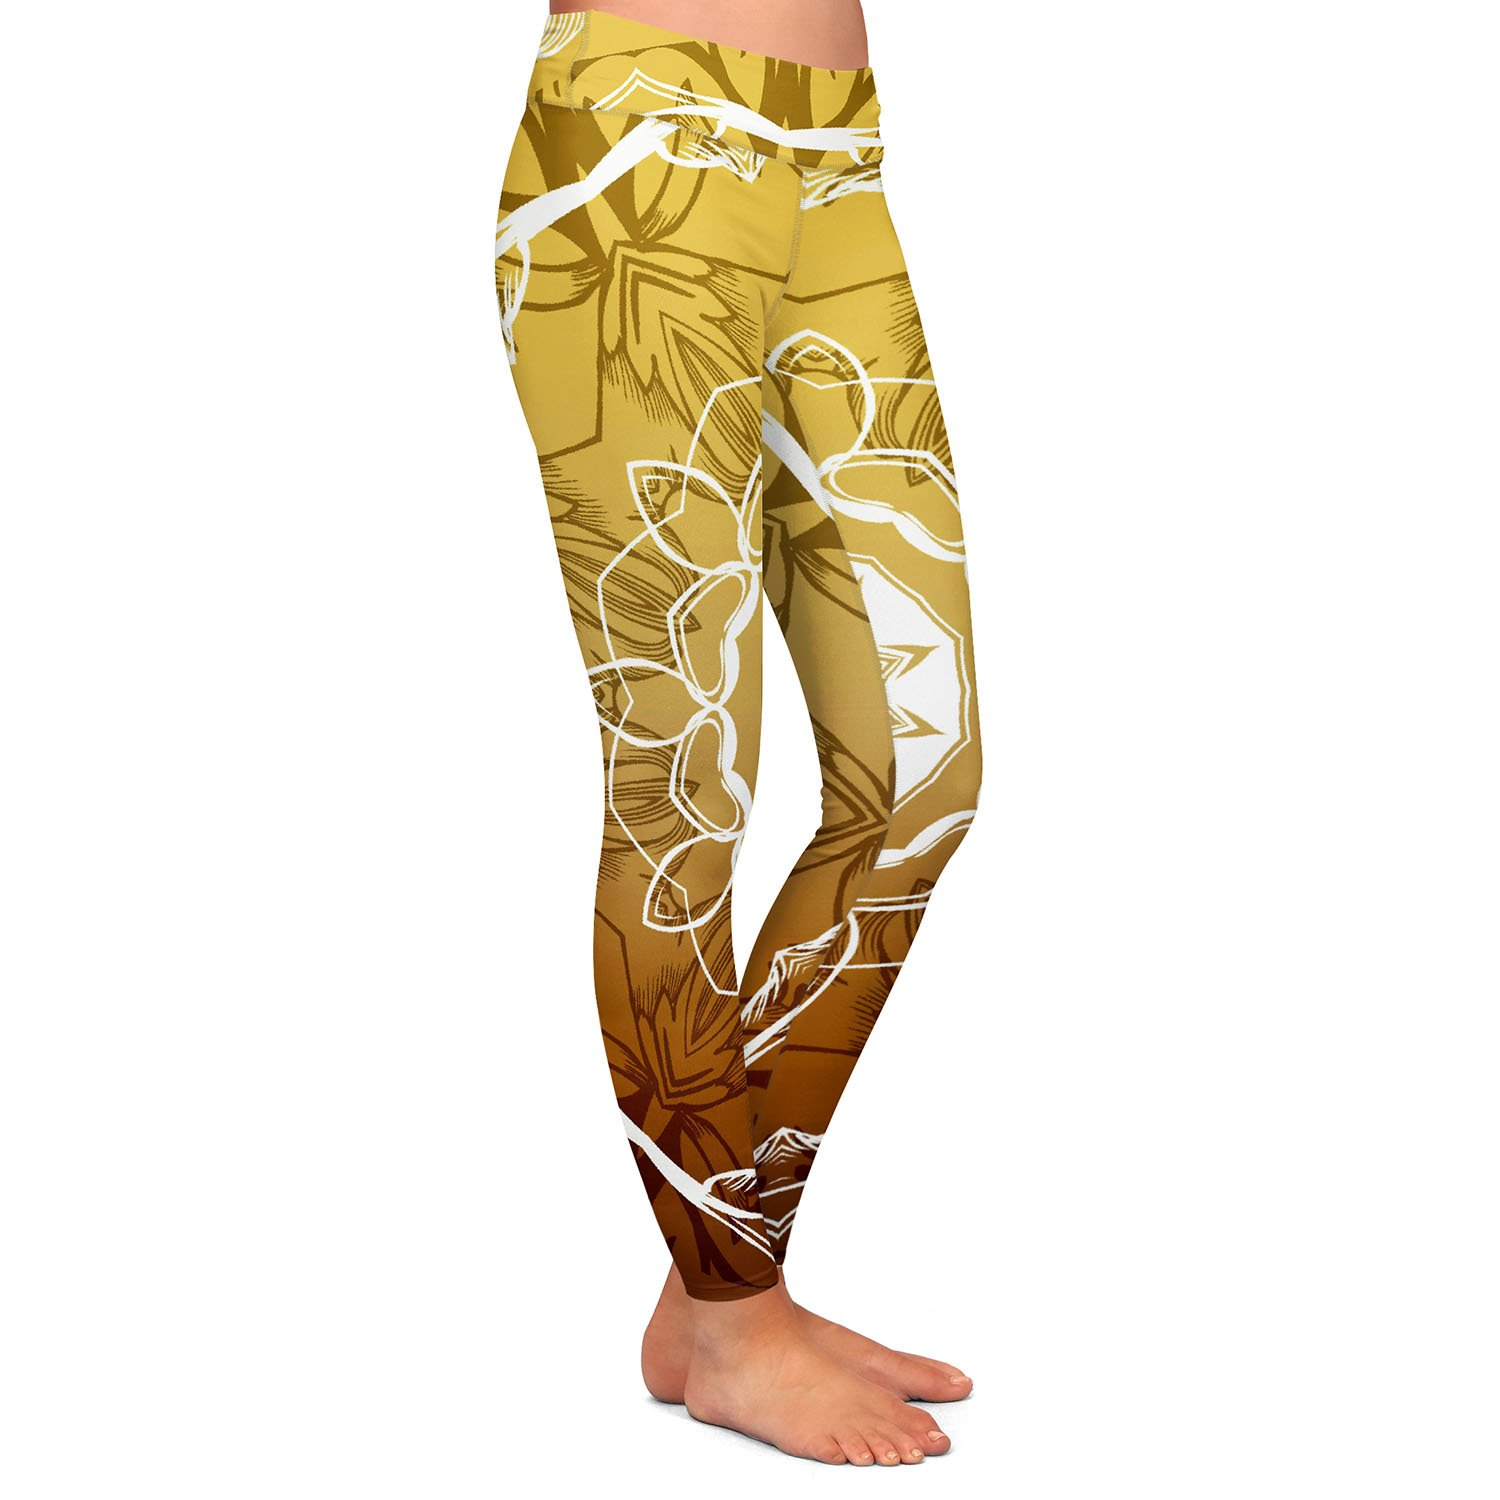 Athletic Yoga Leggings from DiaNoche Designs by Angelina Vick Medallion 3 Gold